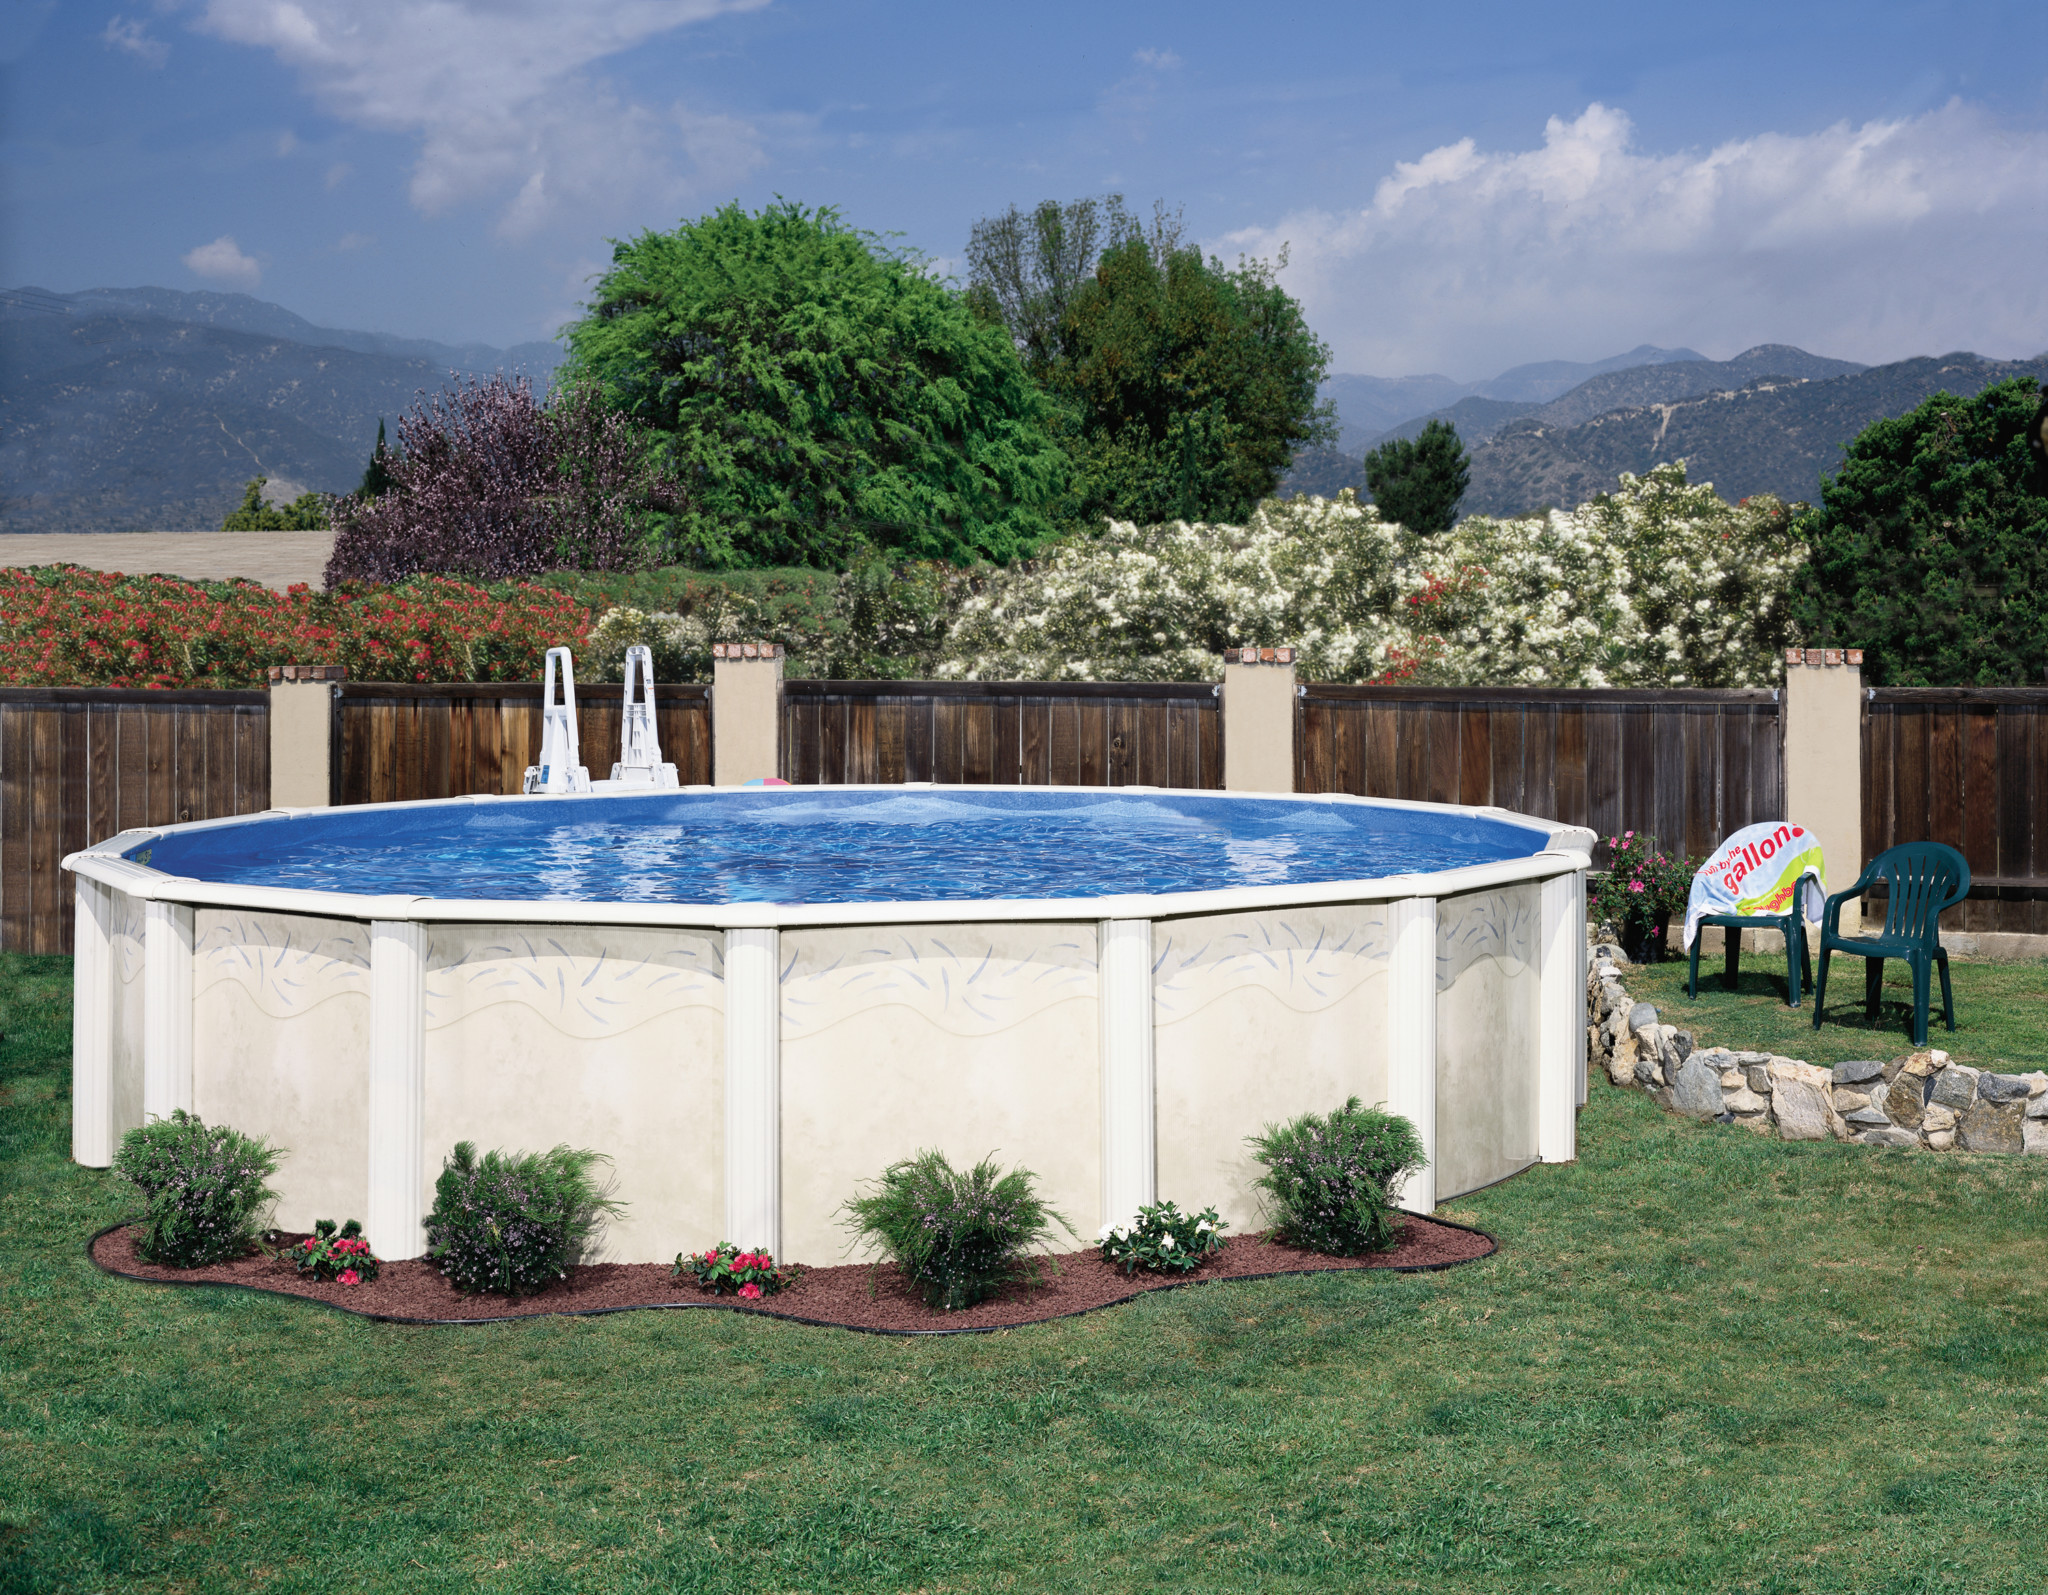 2019 Doughboy Desert Spring | swimming pool discounters